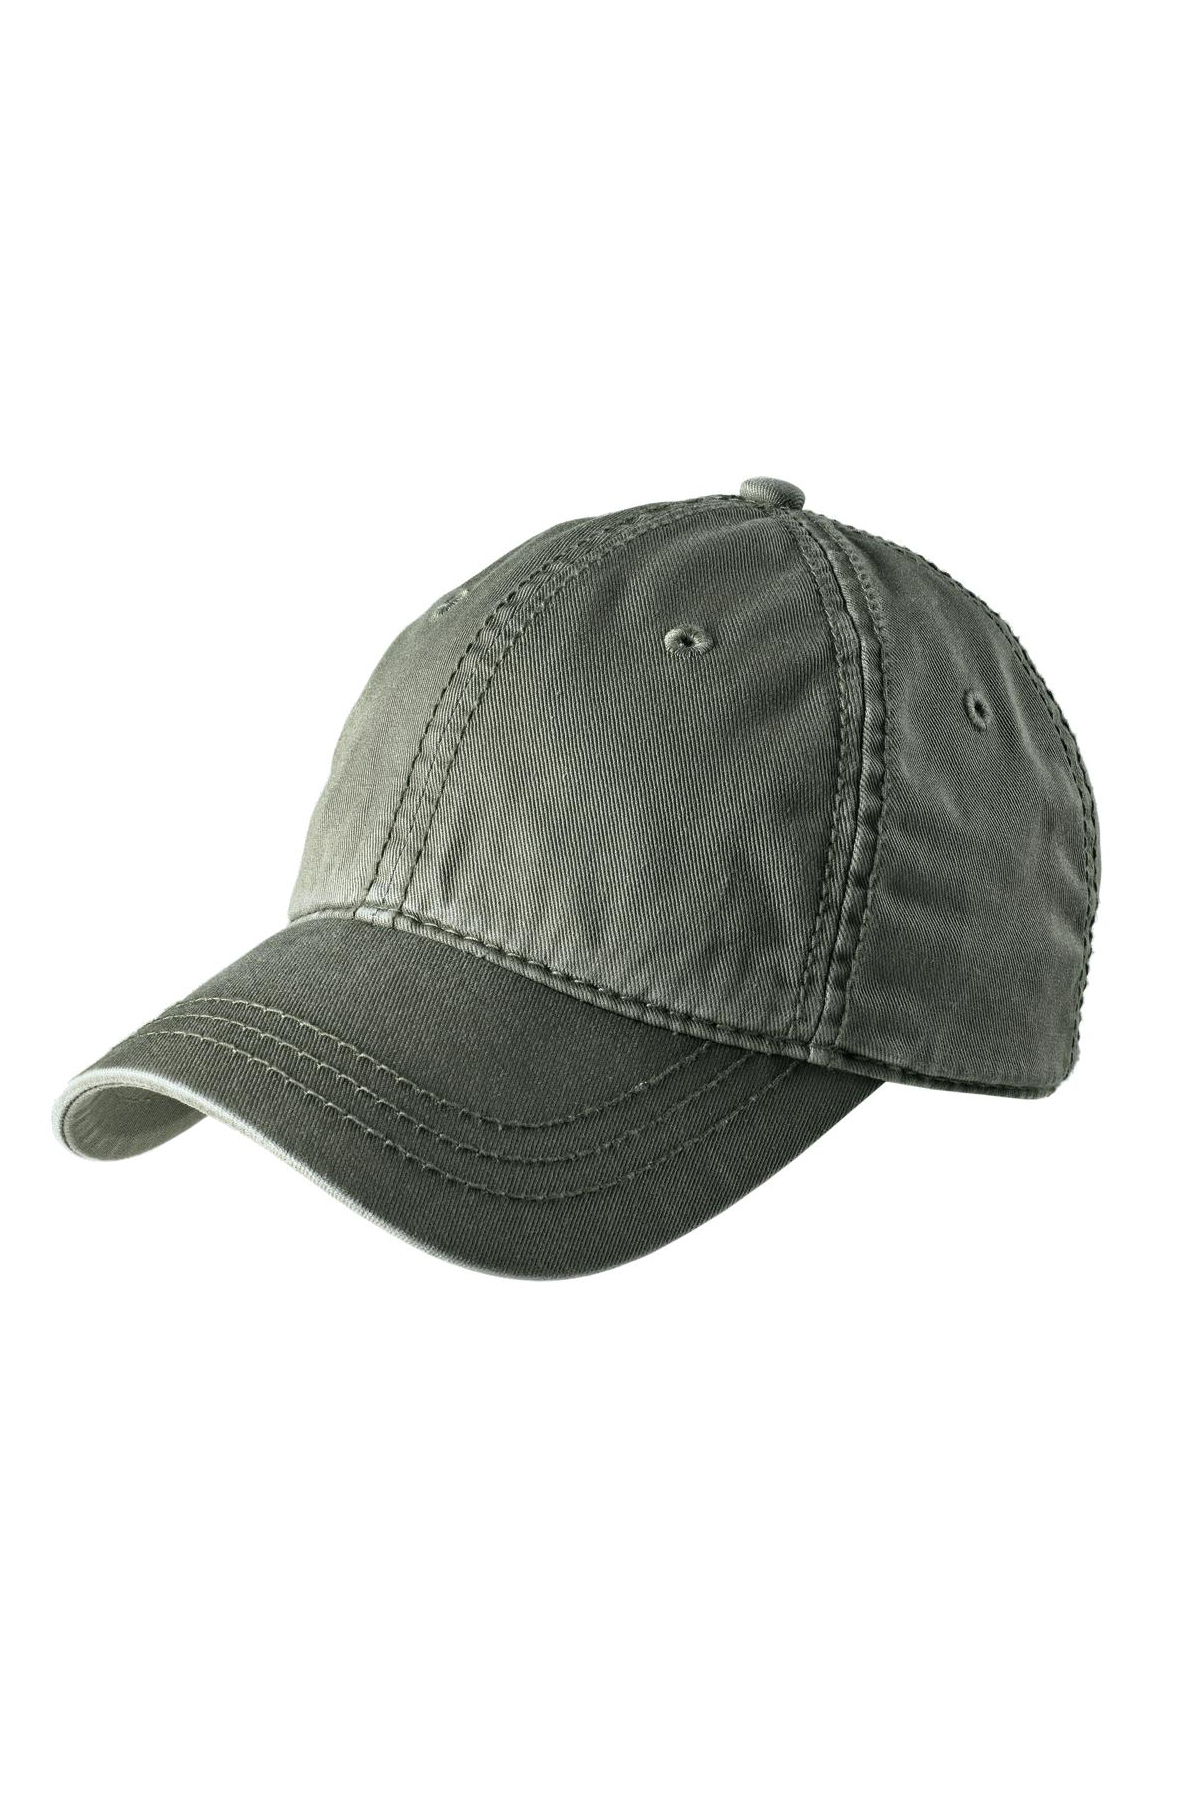 90fee1b9ee91c6 District ® Mesh Back Cap. DT607 - Custom Shirt Shop